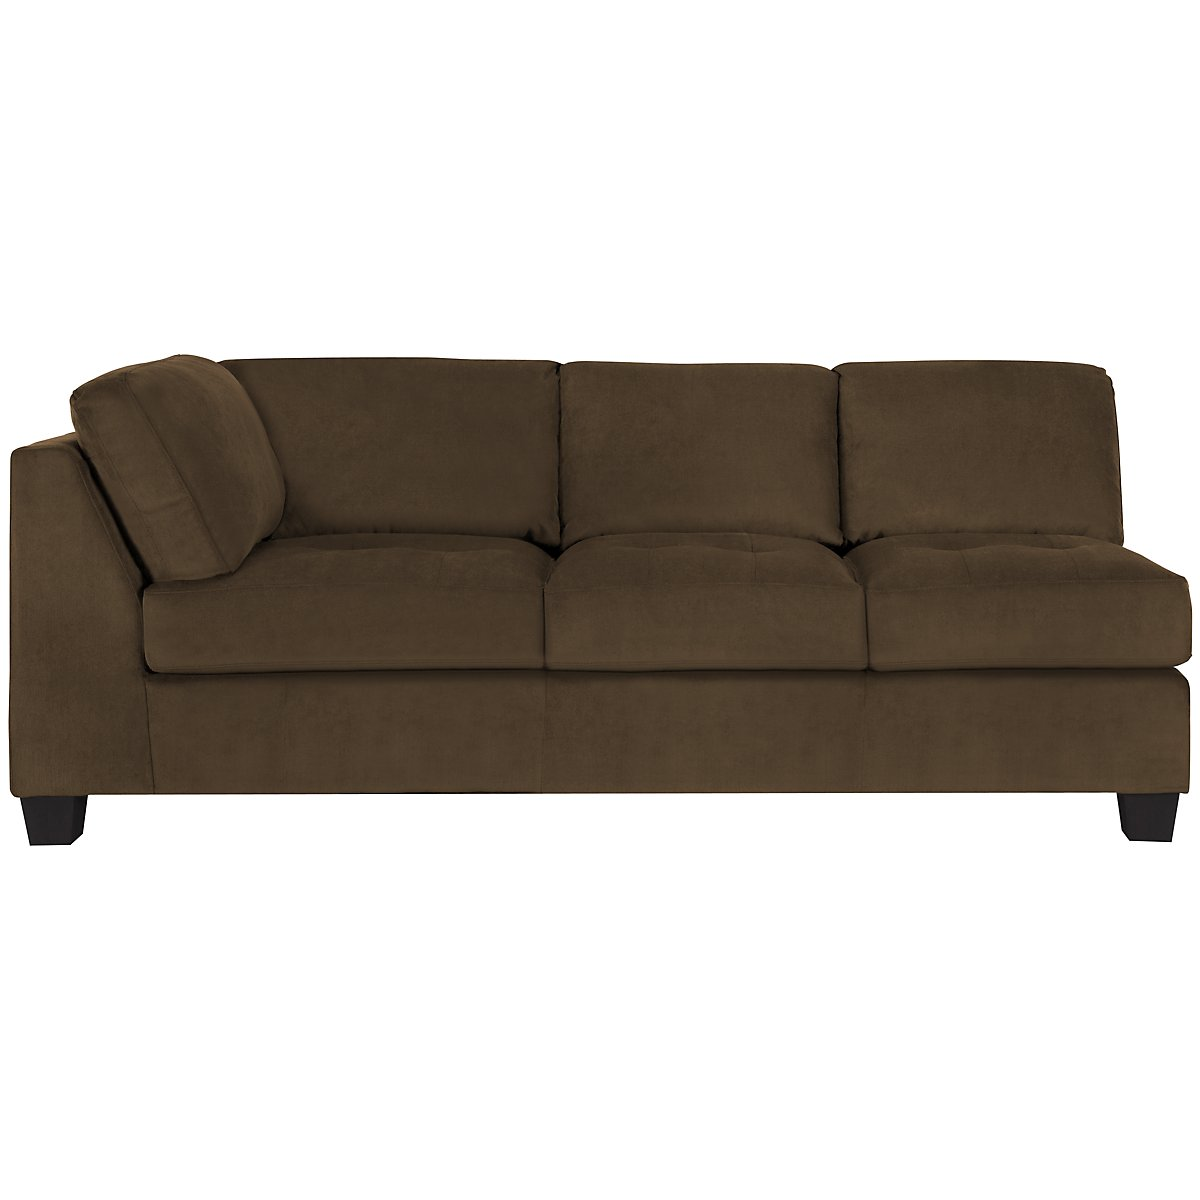 City Furniture Mercer2 Dk Brown Microfiber Right Chaise